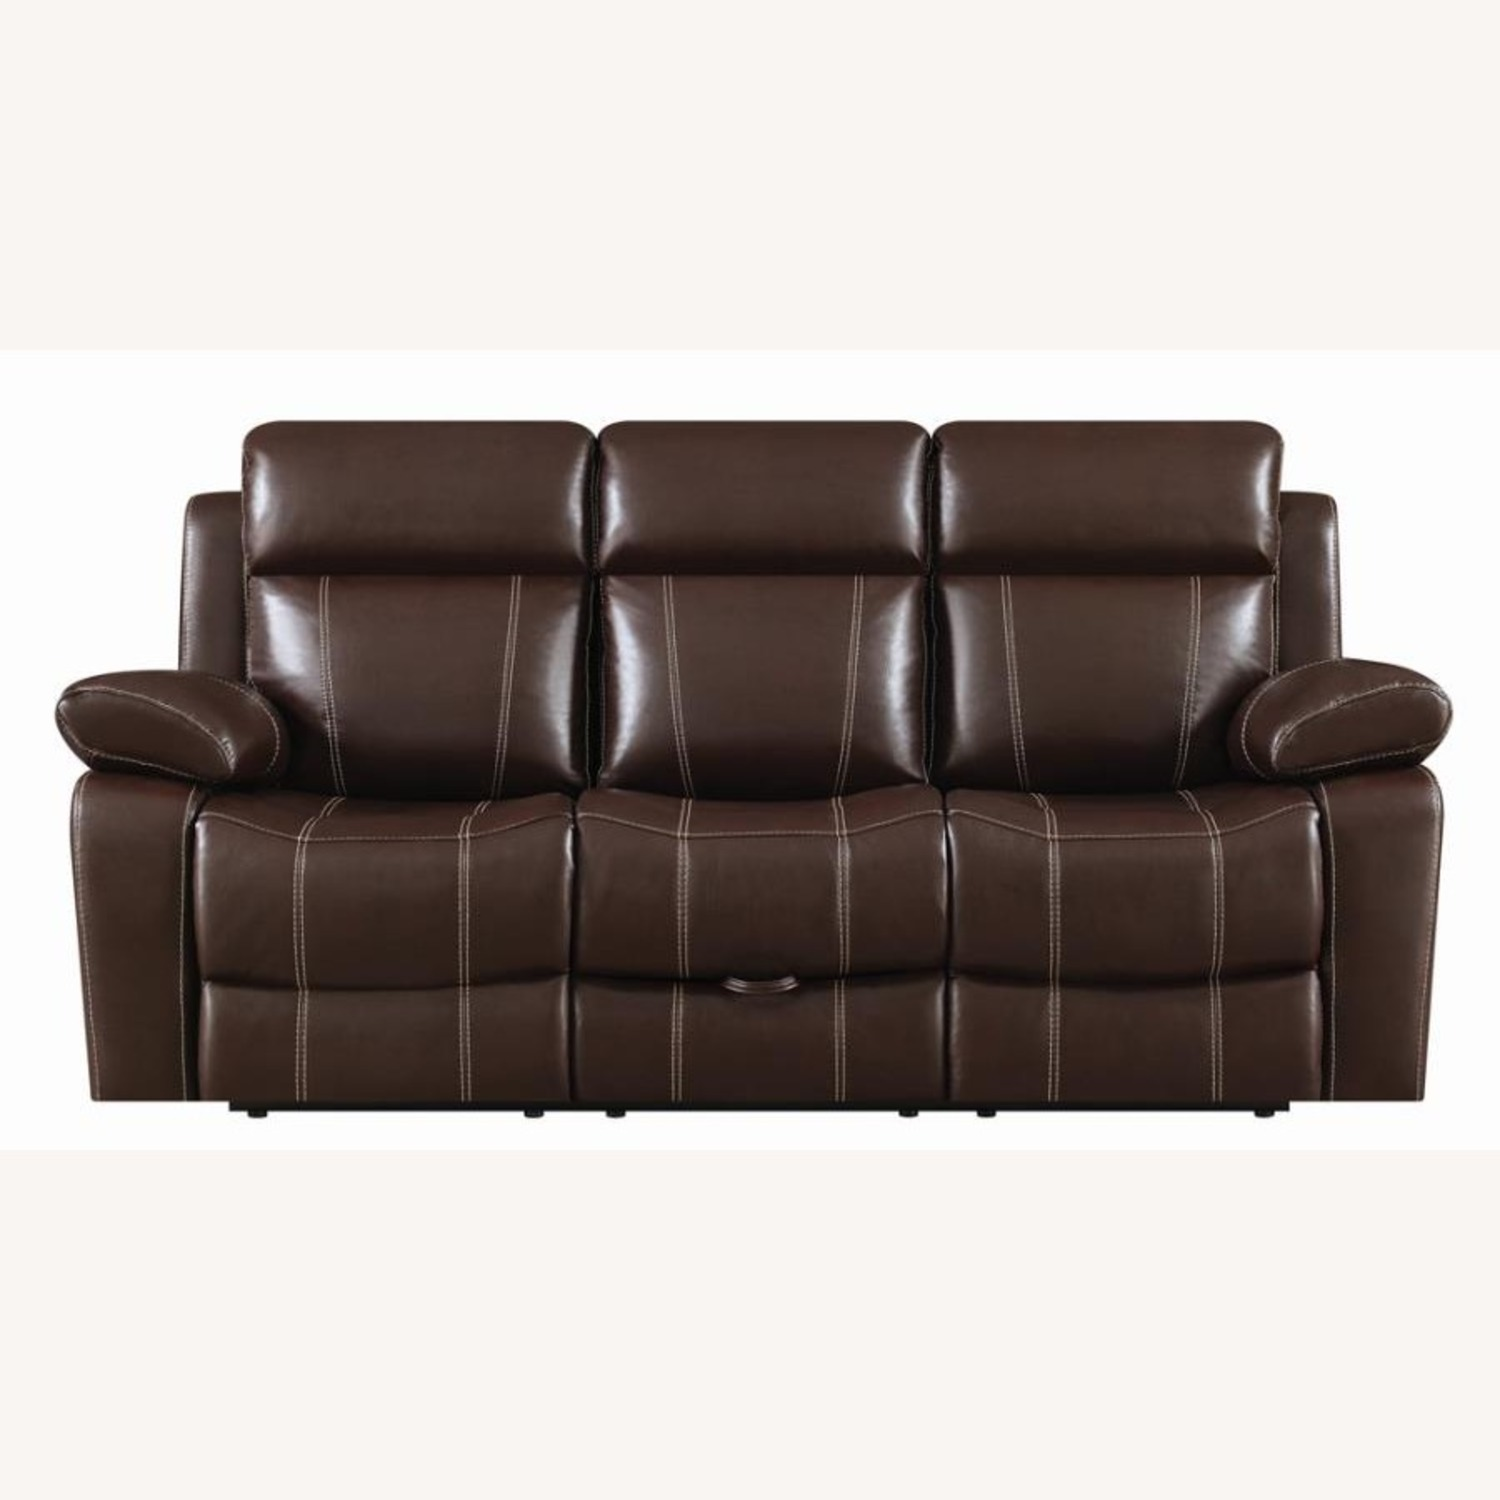 Motion Sofa In Chestnut Leather W/ Storage Drawer - image-2